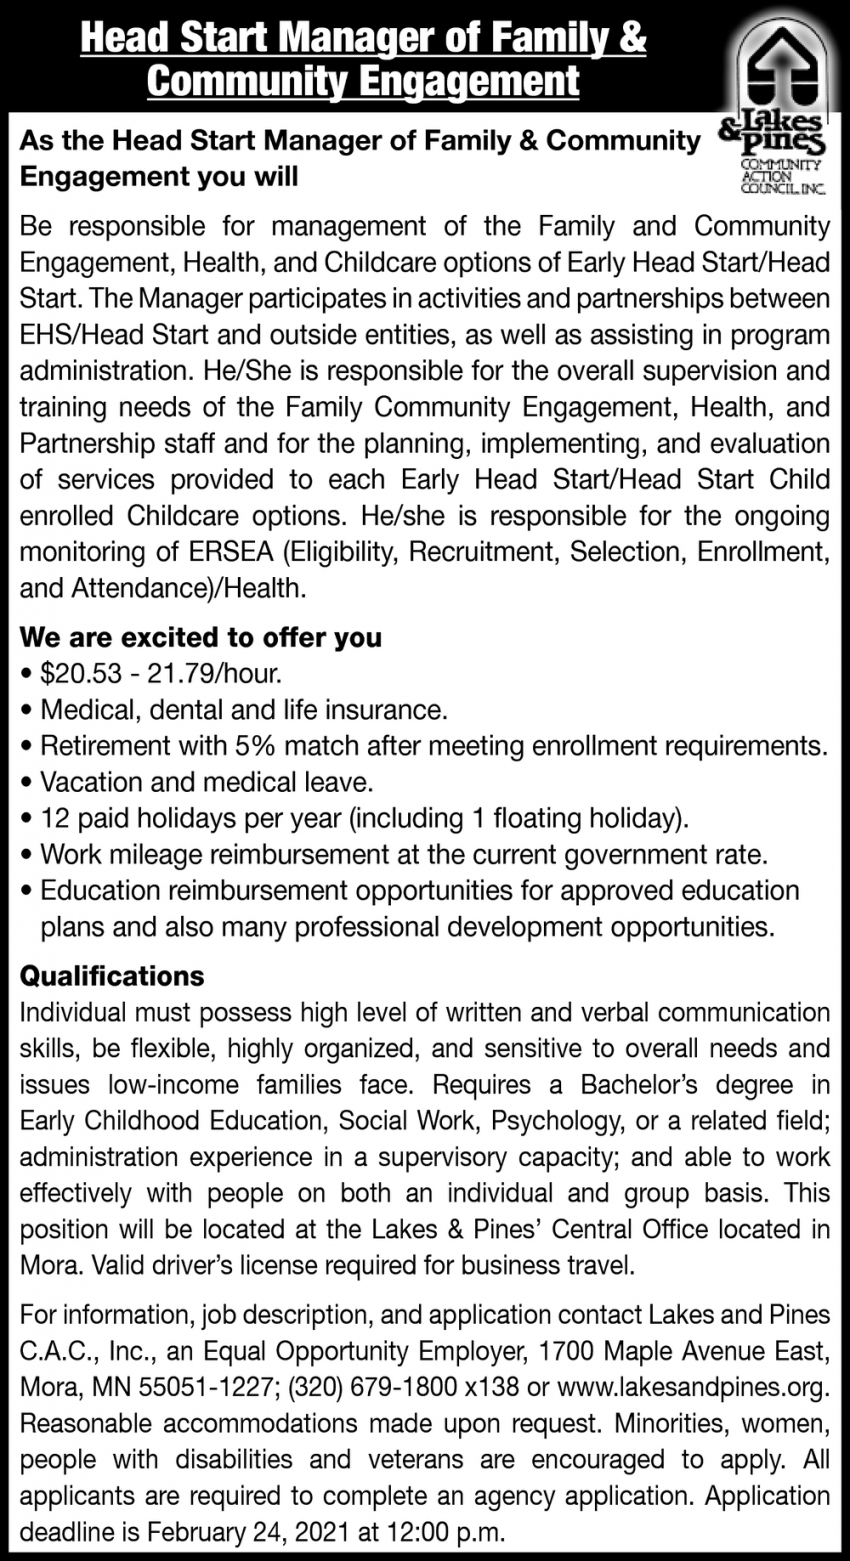 Head Start Manager of Family & Community Engagement